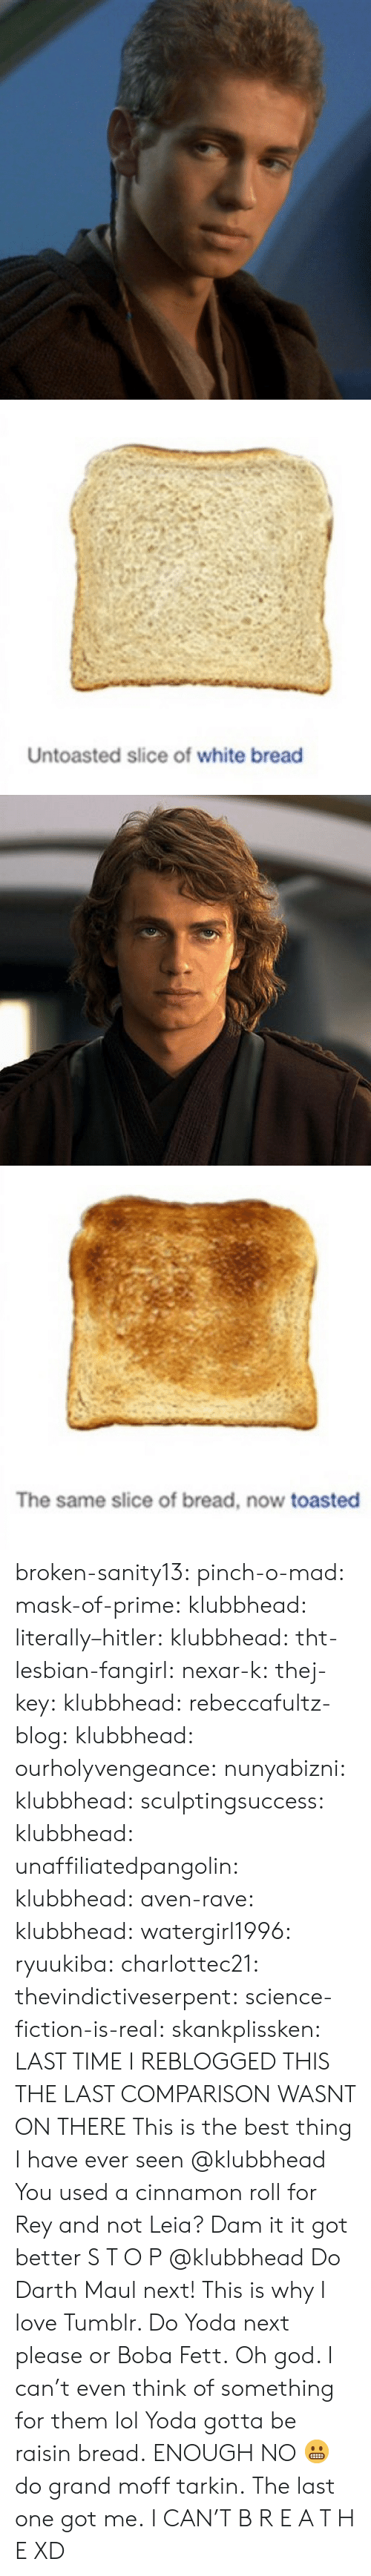 darth maul: Untoasted slice of white bread   The same slice of bread, now toasted broken-sanity13:  pinch-o-mad:   mask-of-prime:  klubbhead:  literally–hitler:  klubbhead:  tht-lesbian-fangirl:  nexar-k:  thej-key:  klubbhead:  rebeccafultz-blog:   klubbhead:  ourholyvengeance:  nunyabizni:  klubbhead:  sculptingsuccess:  klubbhead:   unaffiliatedpangolin:  klubbhead:  aven-rave:  klubbhead:   watergirl1996:  ryuukiba:  charlottec21:  thevindictiveserpent:  science-fiction-is-real:  skankplissken:                   LAST TIME I REBLOGGED THIS THE LAST COMPARISON WASNT ON THERE    This is the best thing I have ever seen   @klubbhead You used a cinnamon roll for Rey and not Leia?    Dam it it got better   S T O P  @klubbhead Do Darth Maul next!   This is why I love Tumblr. Do Yoda next please or Boba Fett.   Oh god. I can't even think of something for them lol  Yoda gotta be raisin bread.   ENOUGH   NO 😬 do grand moff tarkin.     The last one got me.   I CAN'T  B R E A T H E  XD